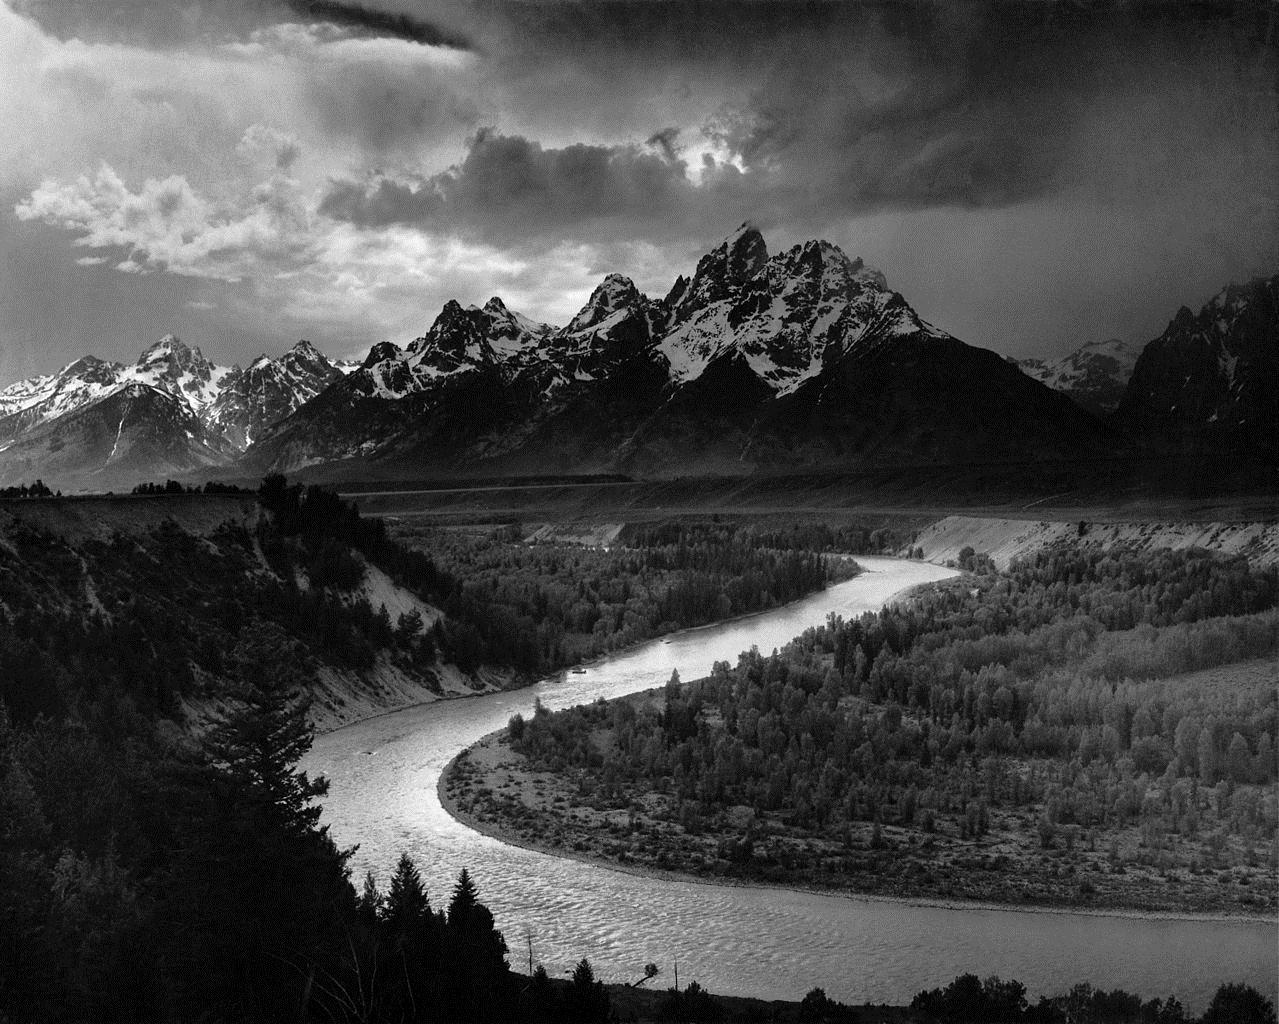 The Tetons and the Snake River, 1942